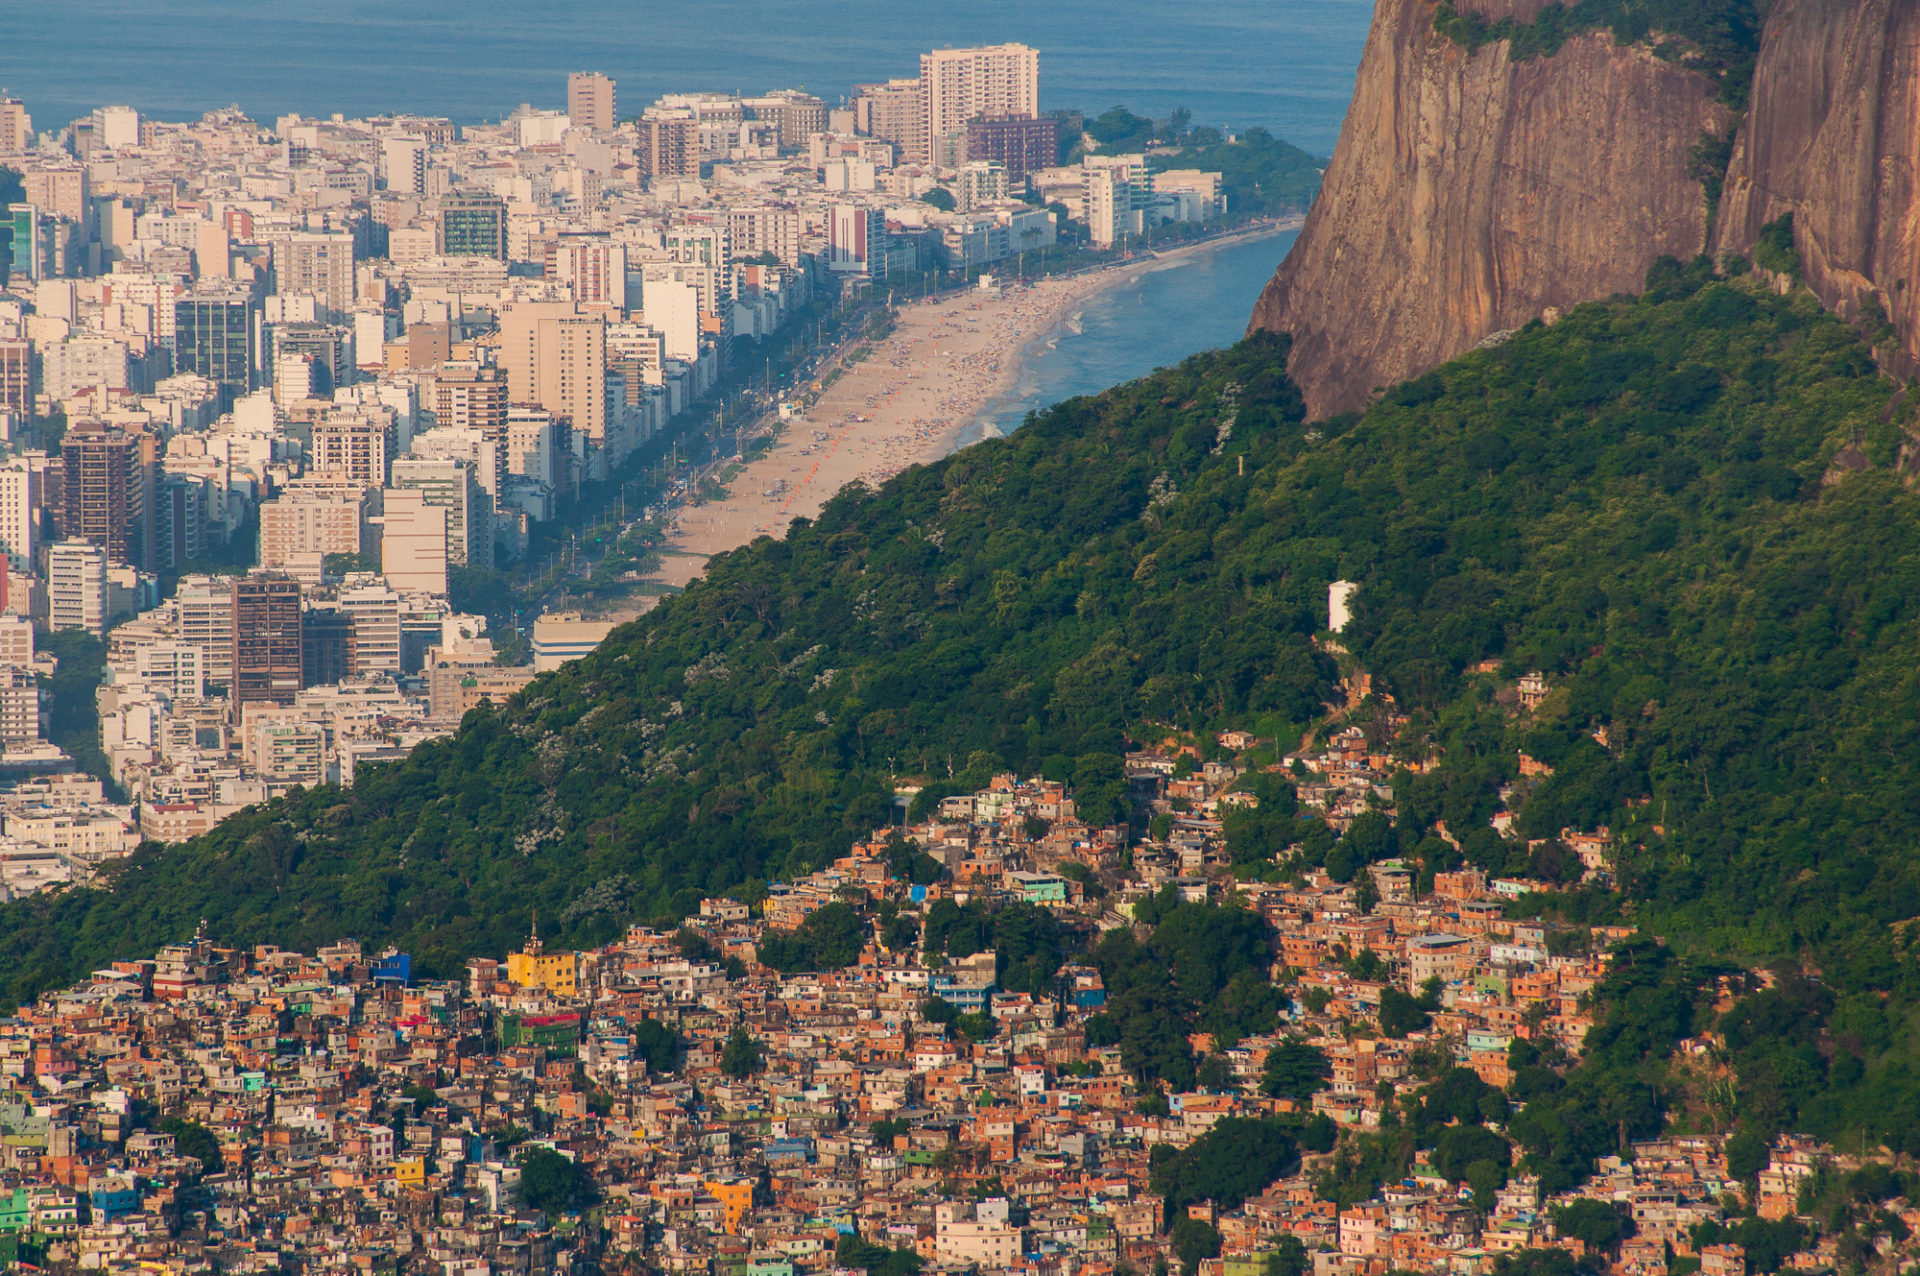 Latin America is more prosperous but less equal